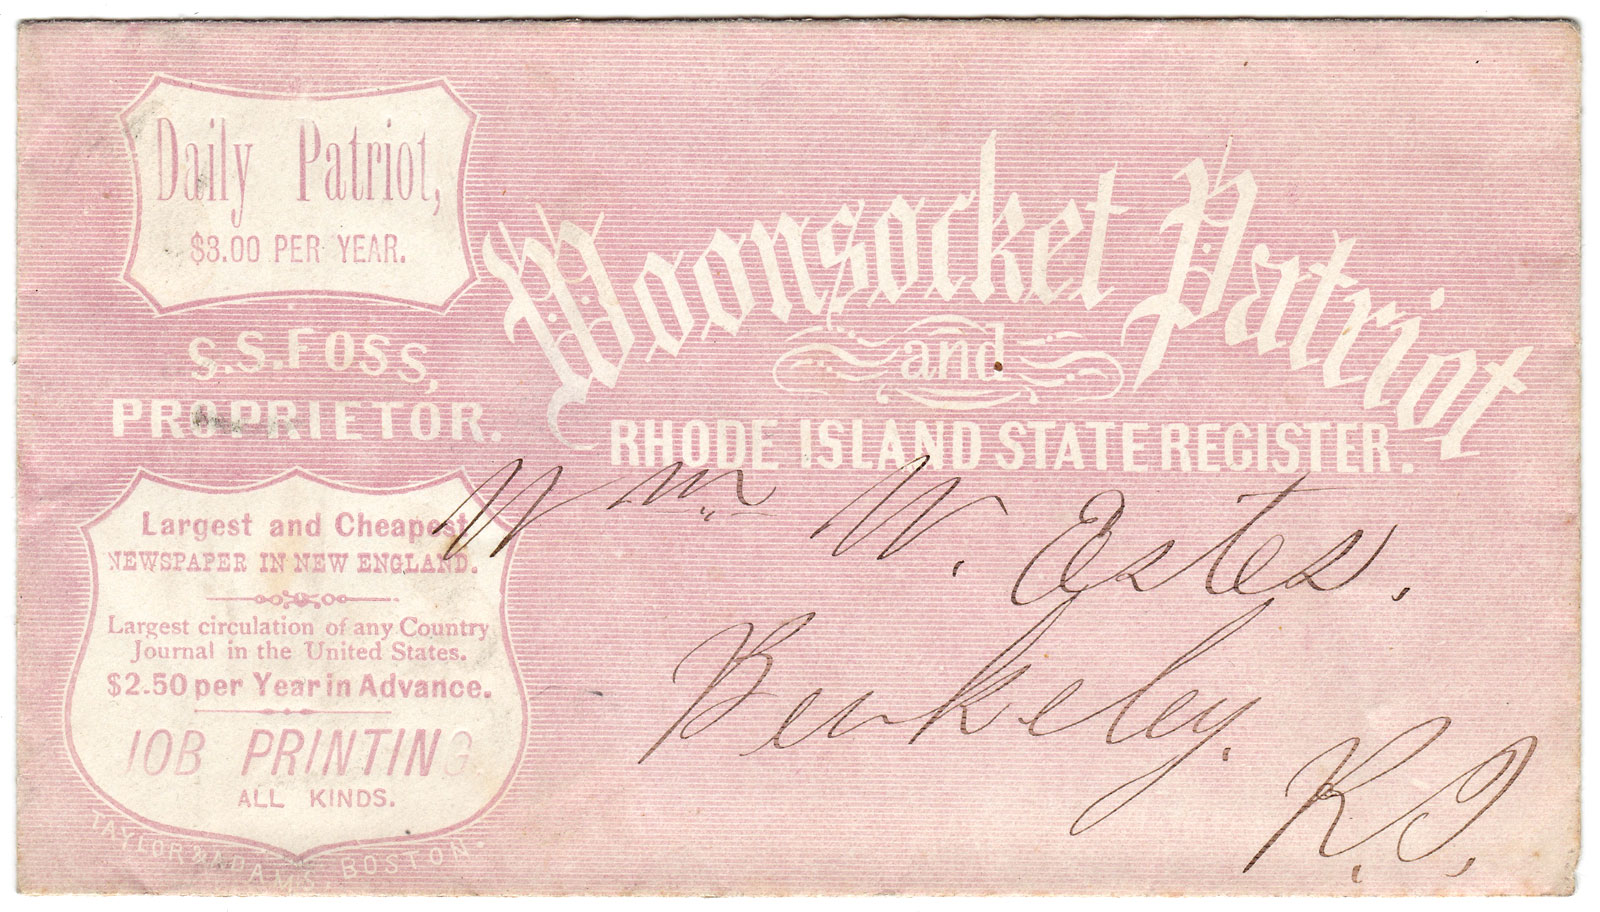 Rhode Island Printing Woonsocket Patriot and Rhode Island State Register  Advertorial Envelope by S  S  Foss Woonsocket Patriot, Proprietor on Ian